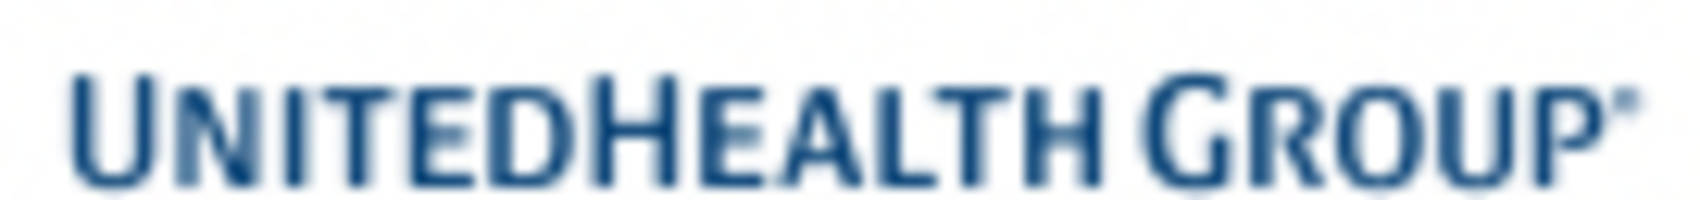 unitedhealth group schedules second quarter earnings release and conference call for july 18, 2017